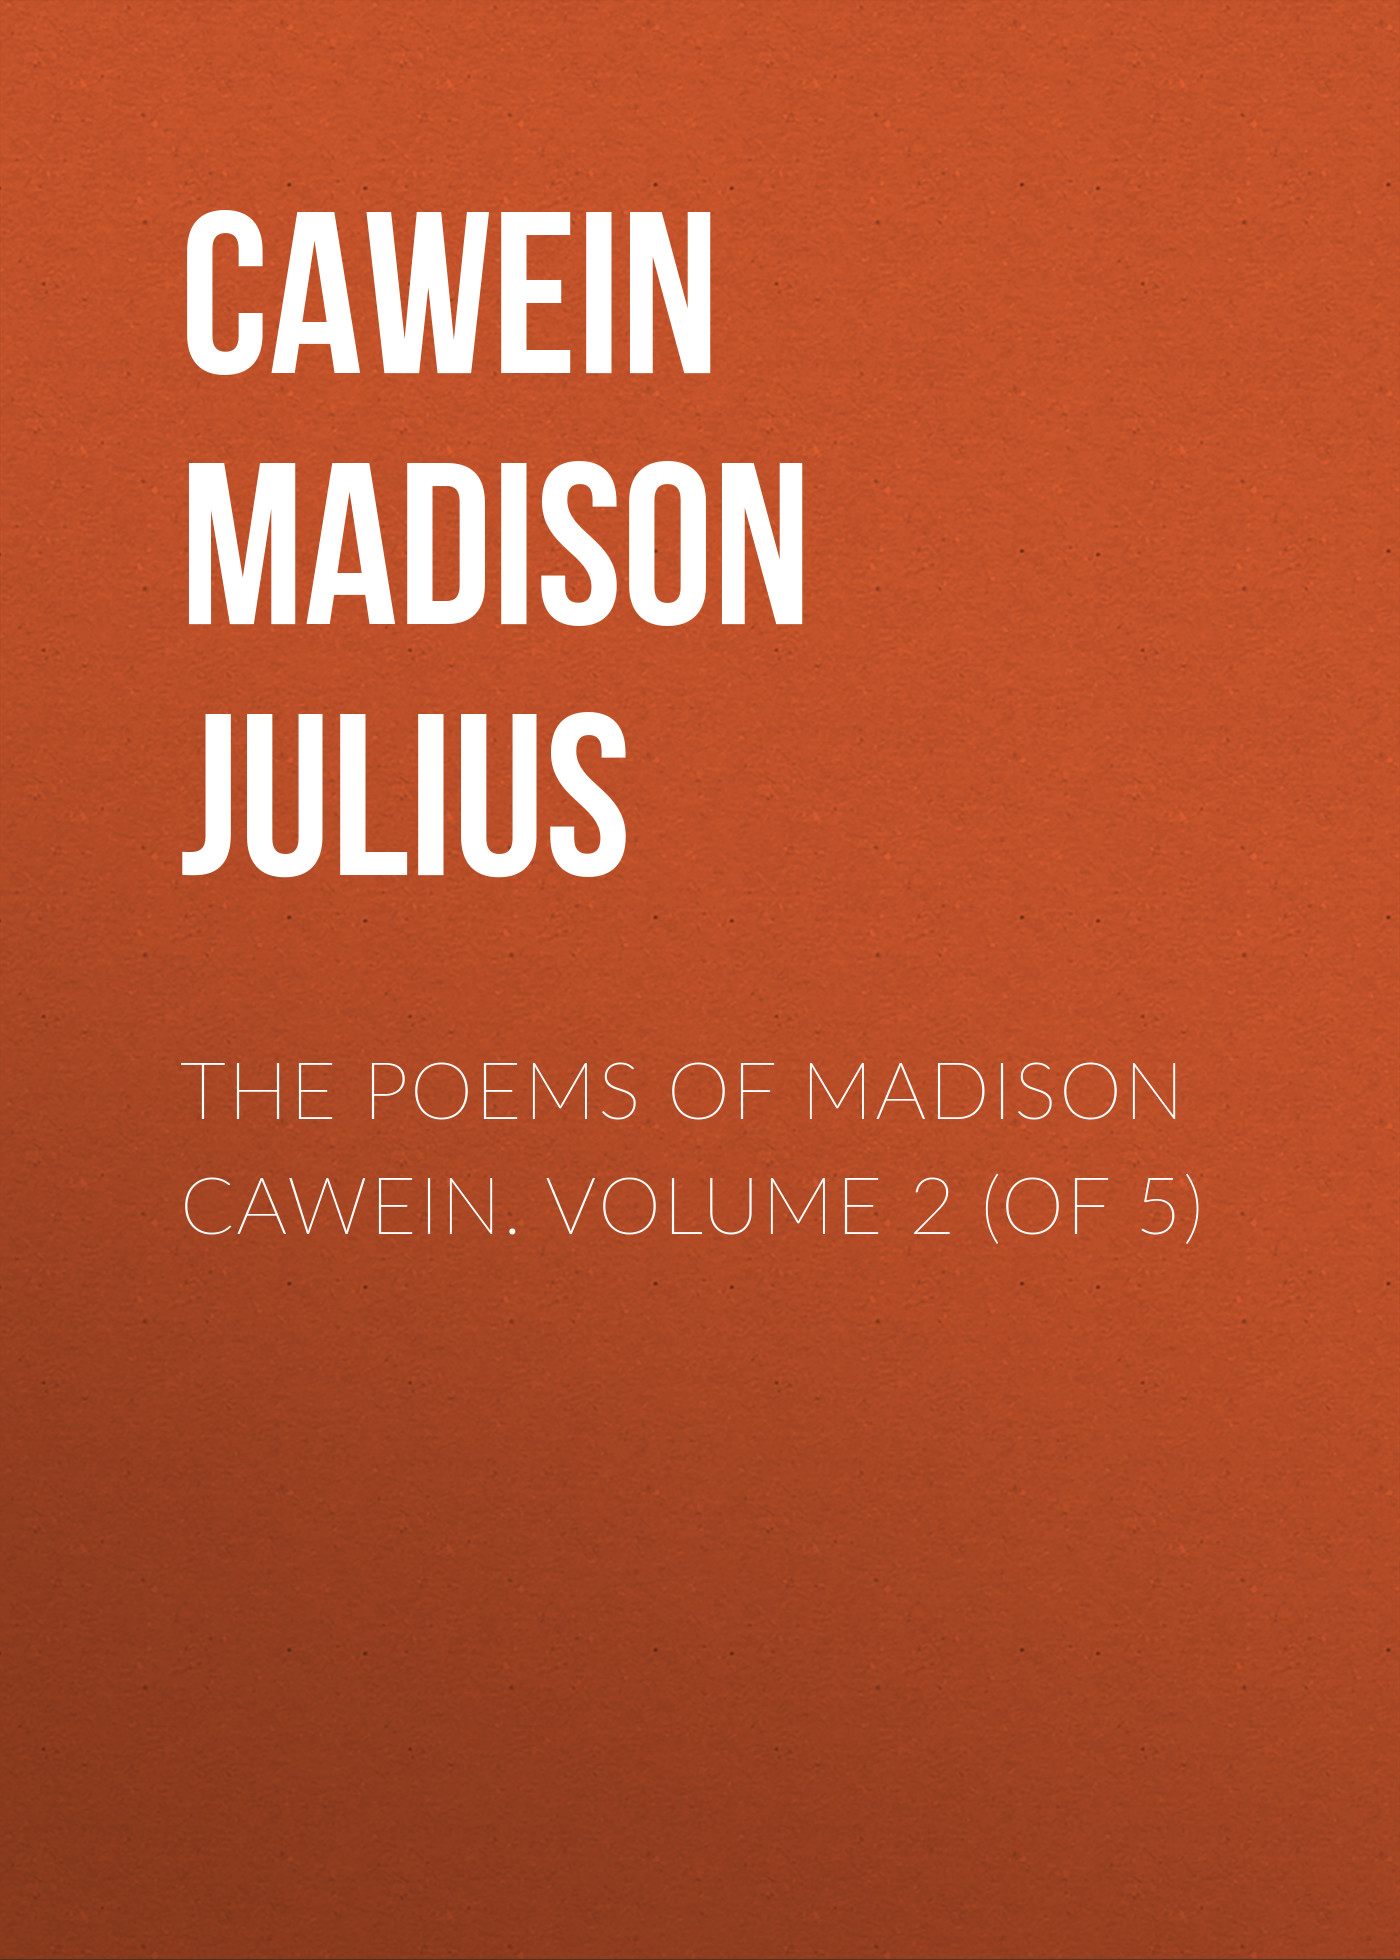 Cawein Madison Julius The Poems of Madison Cawein. Volume 2 (of 5) cawein madison julius blooms of the berry